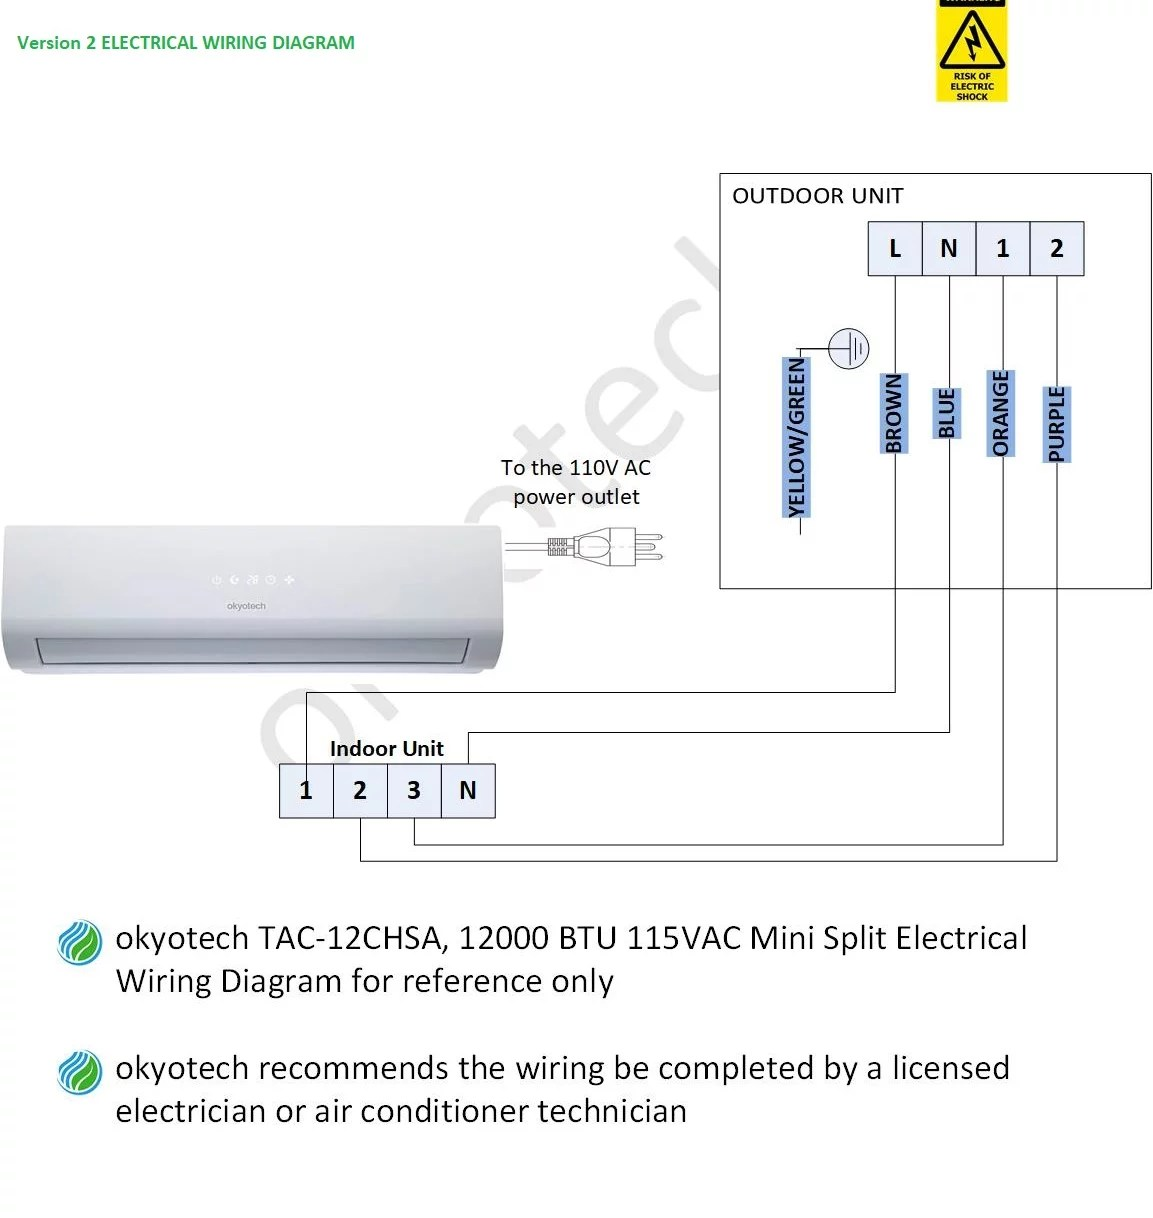 hight resolution of  important note if the terminal block on your outdoor unit is the same as the outdoor terminal block on the drawing below your okyotech unit is version